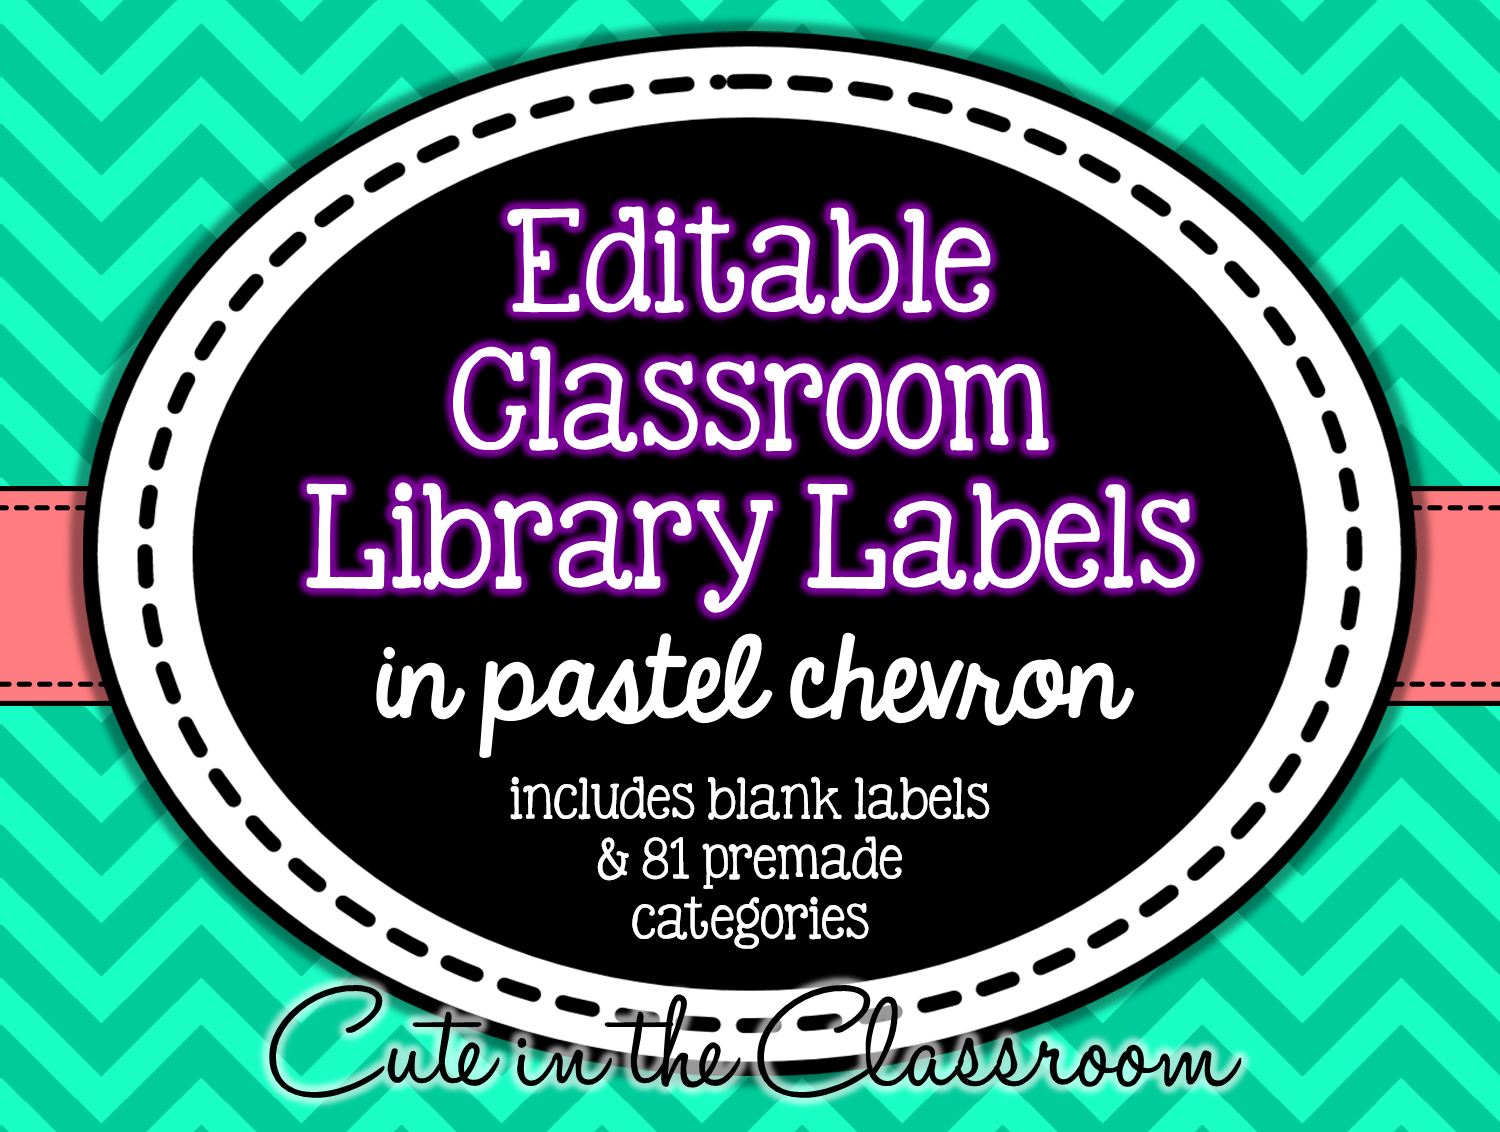 http://www.teacherspayteachers.com/Product/Editable-Classroom-Library-Labels-Pastel-Chevron-1365114